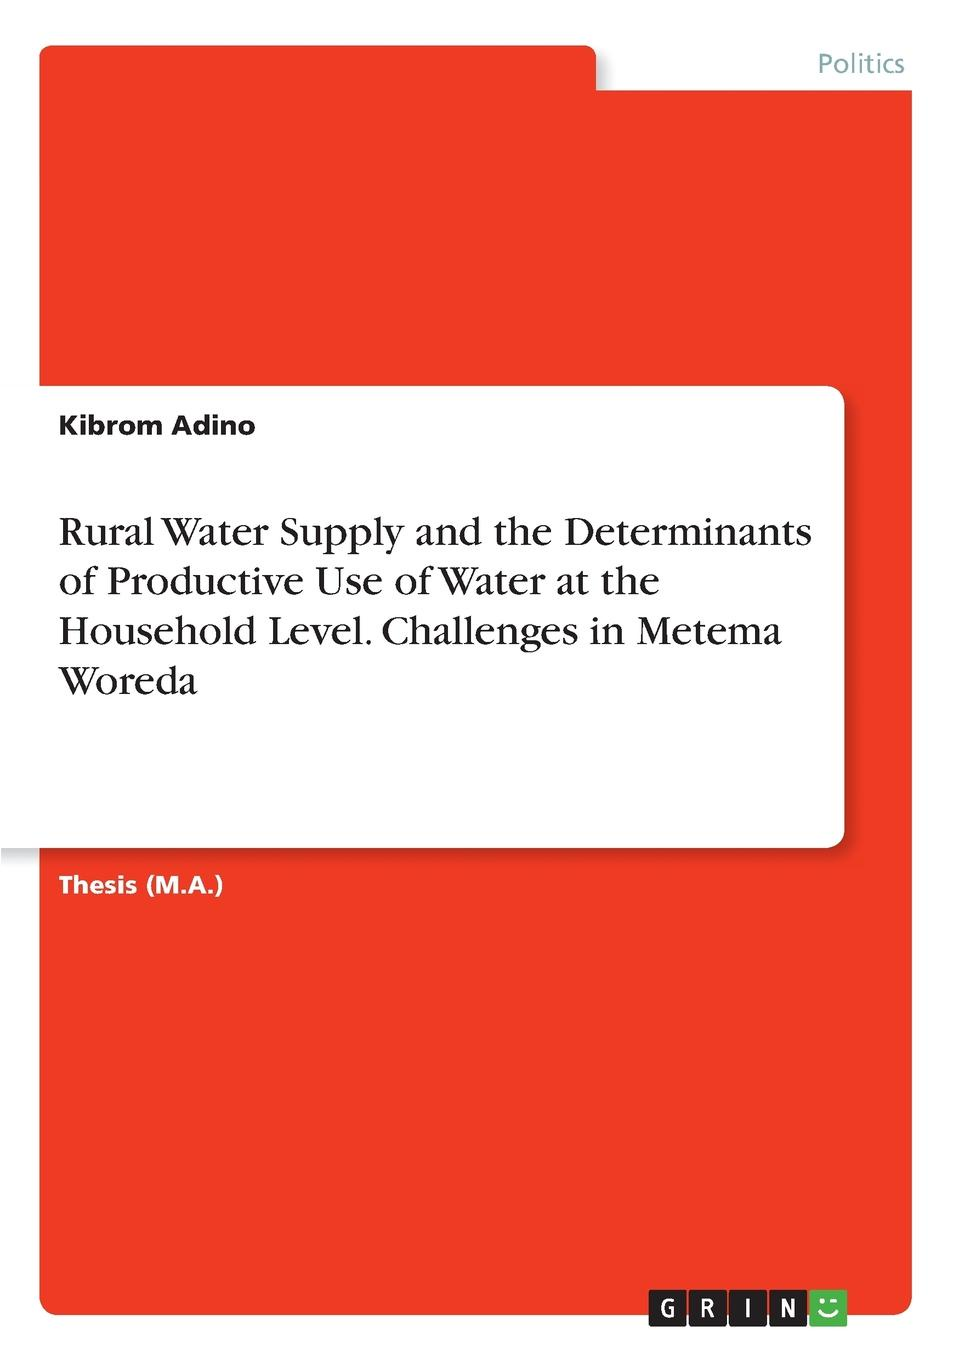 Kibrom Adino Rural Water Supply and the Determinants of Productive Use of Water at the Household Level. Challenges in Metema Woreda haile adamu pattern ecological study of the woodland vegetation in metema area